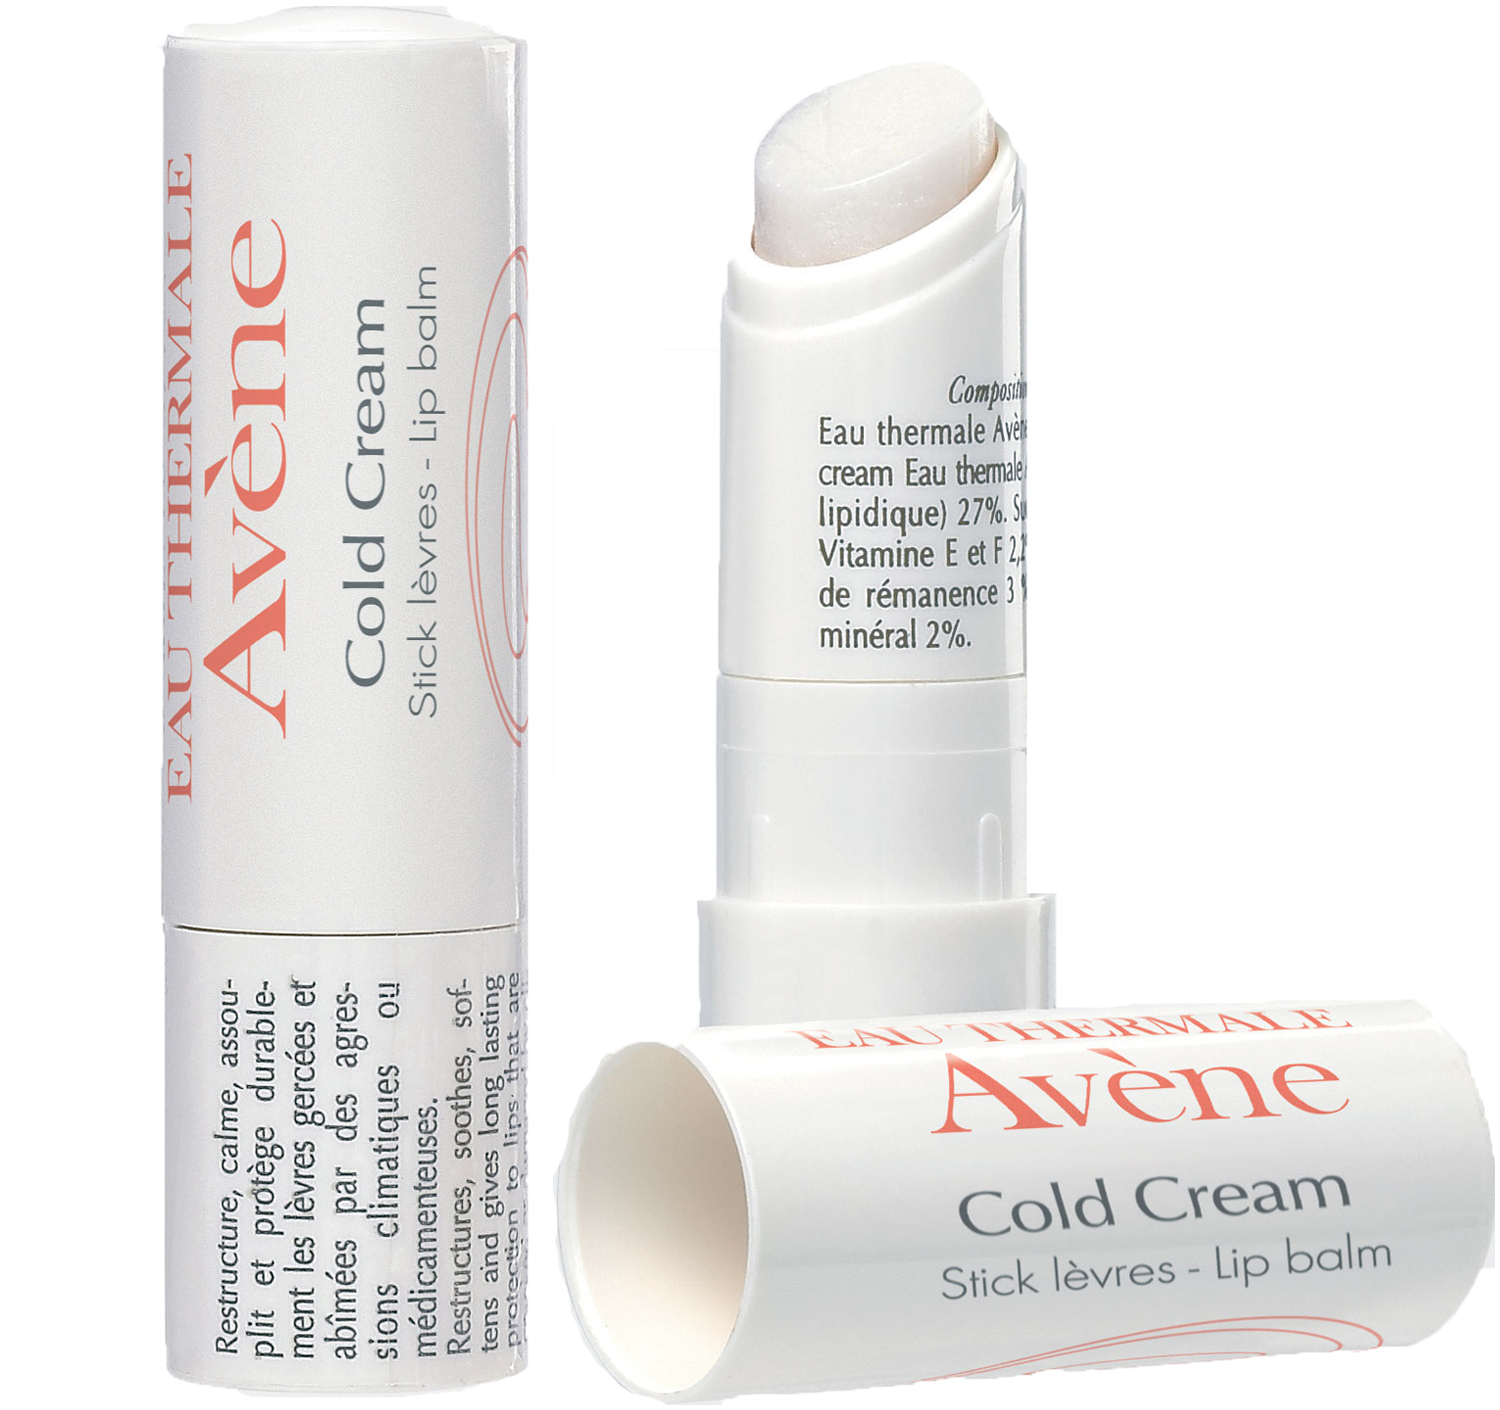 Avene Cold Cream Lip Balm Nourishes Cares For And Protects Your Lips 4g